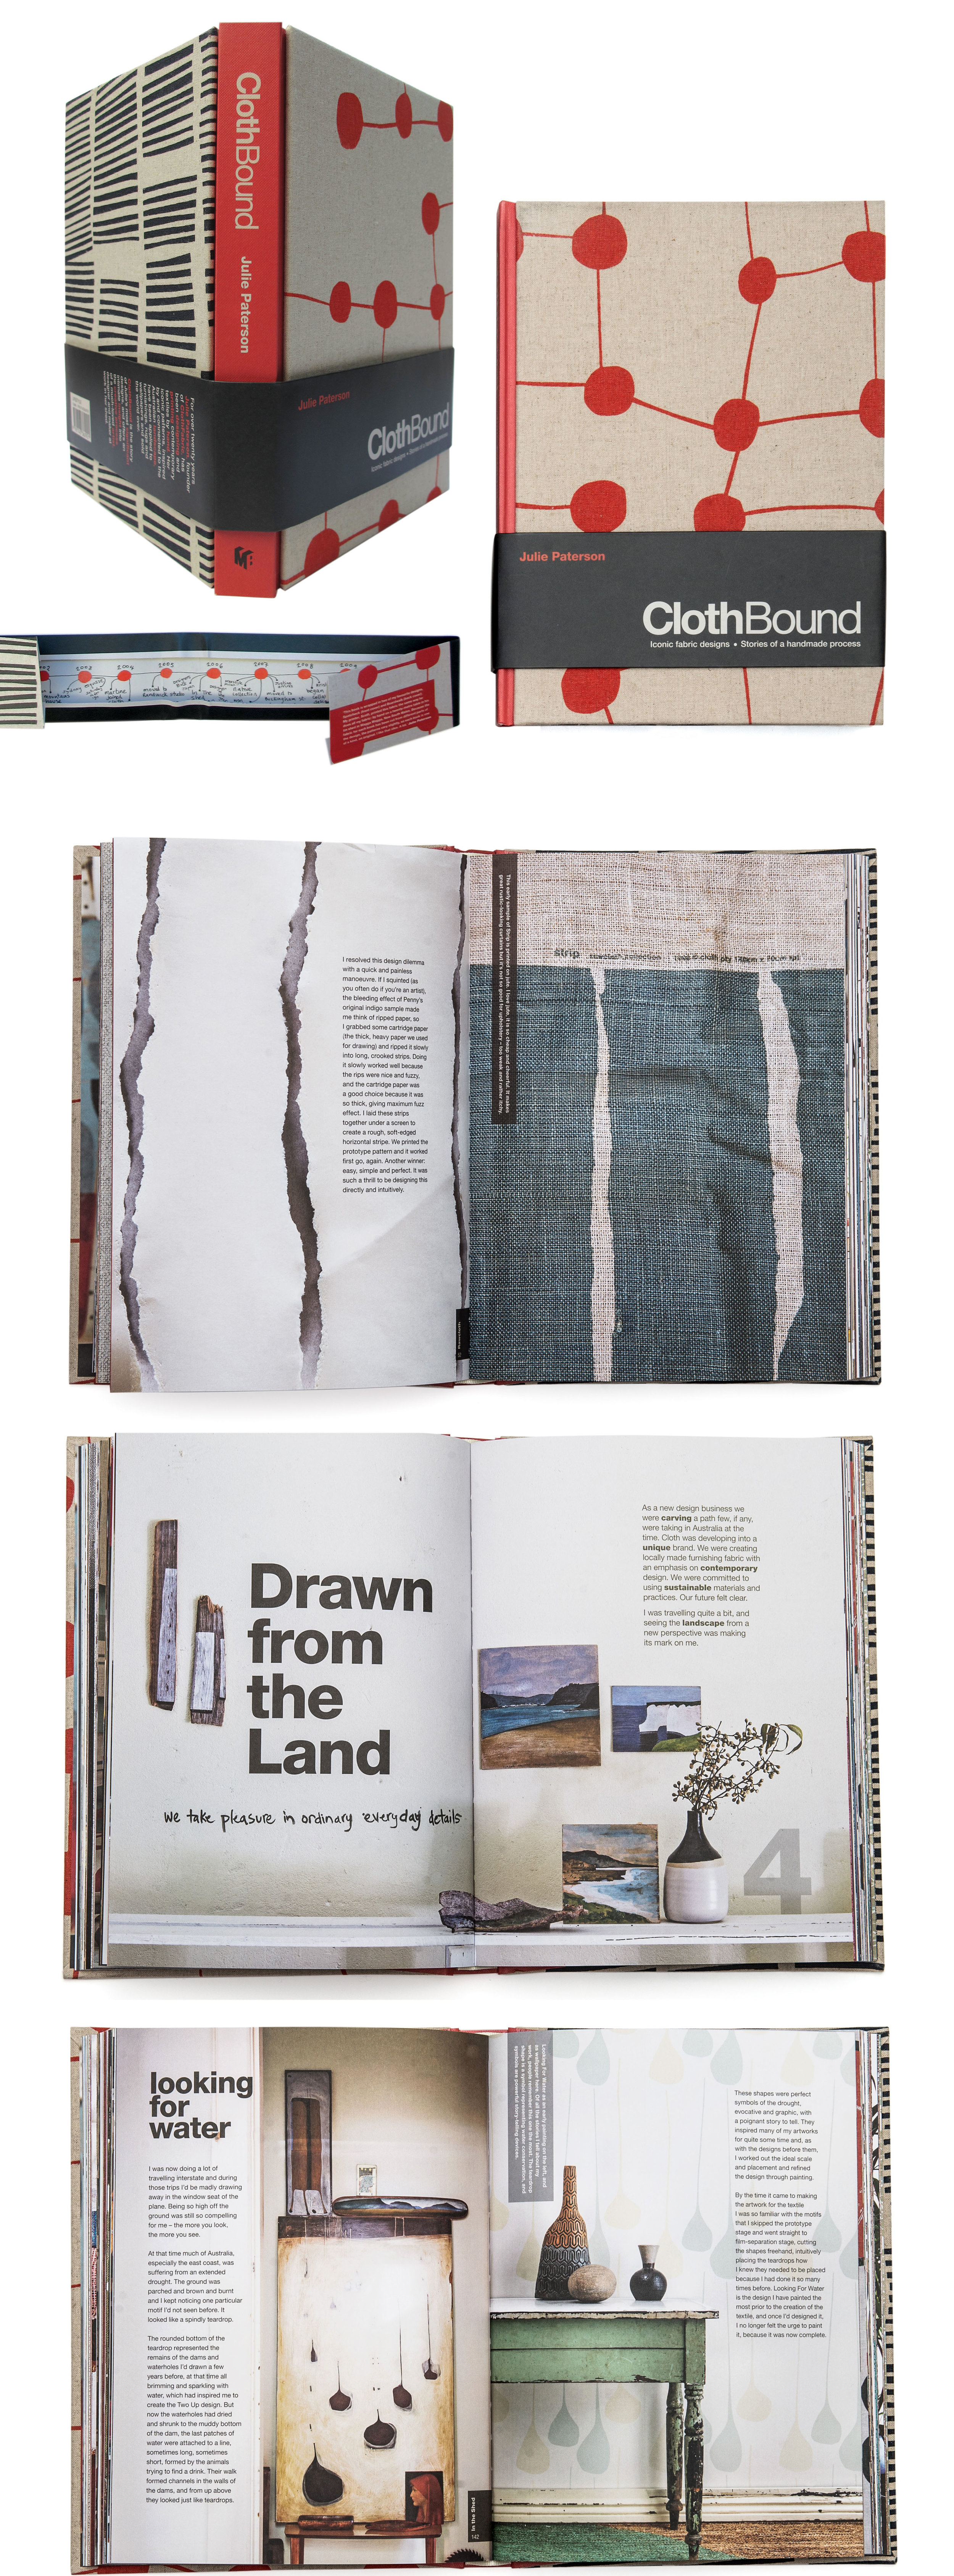 client  Murdoch Books  project  ClothBound by Julie Paterson